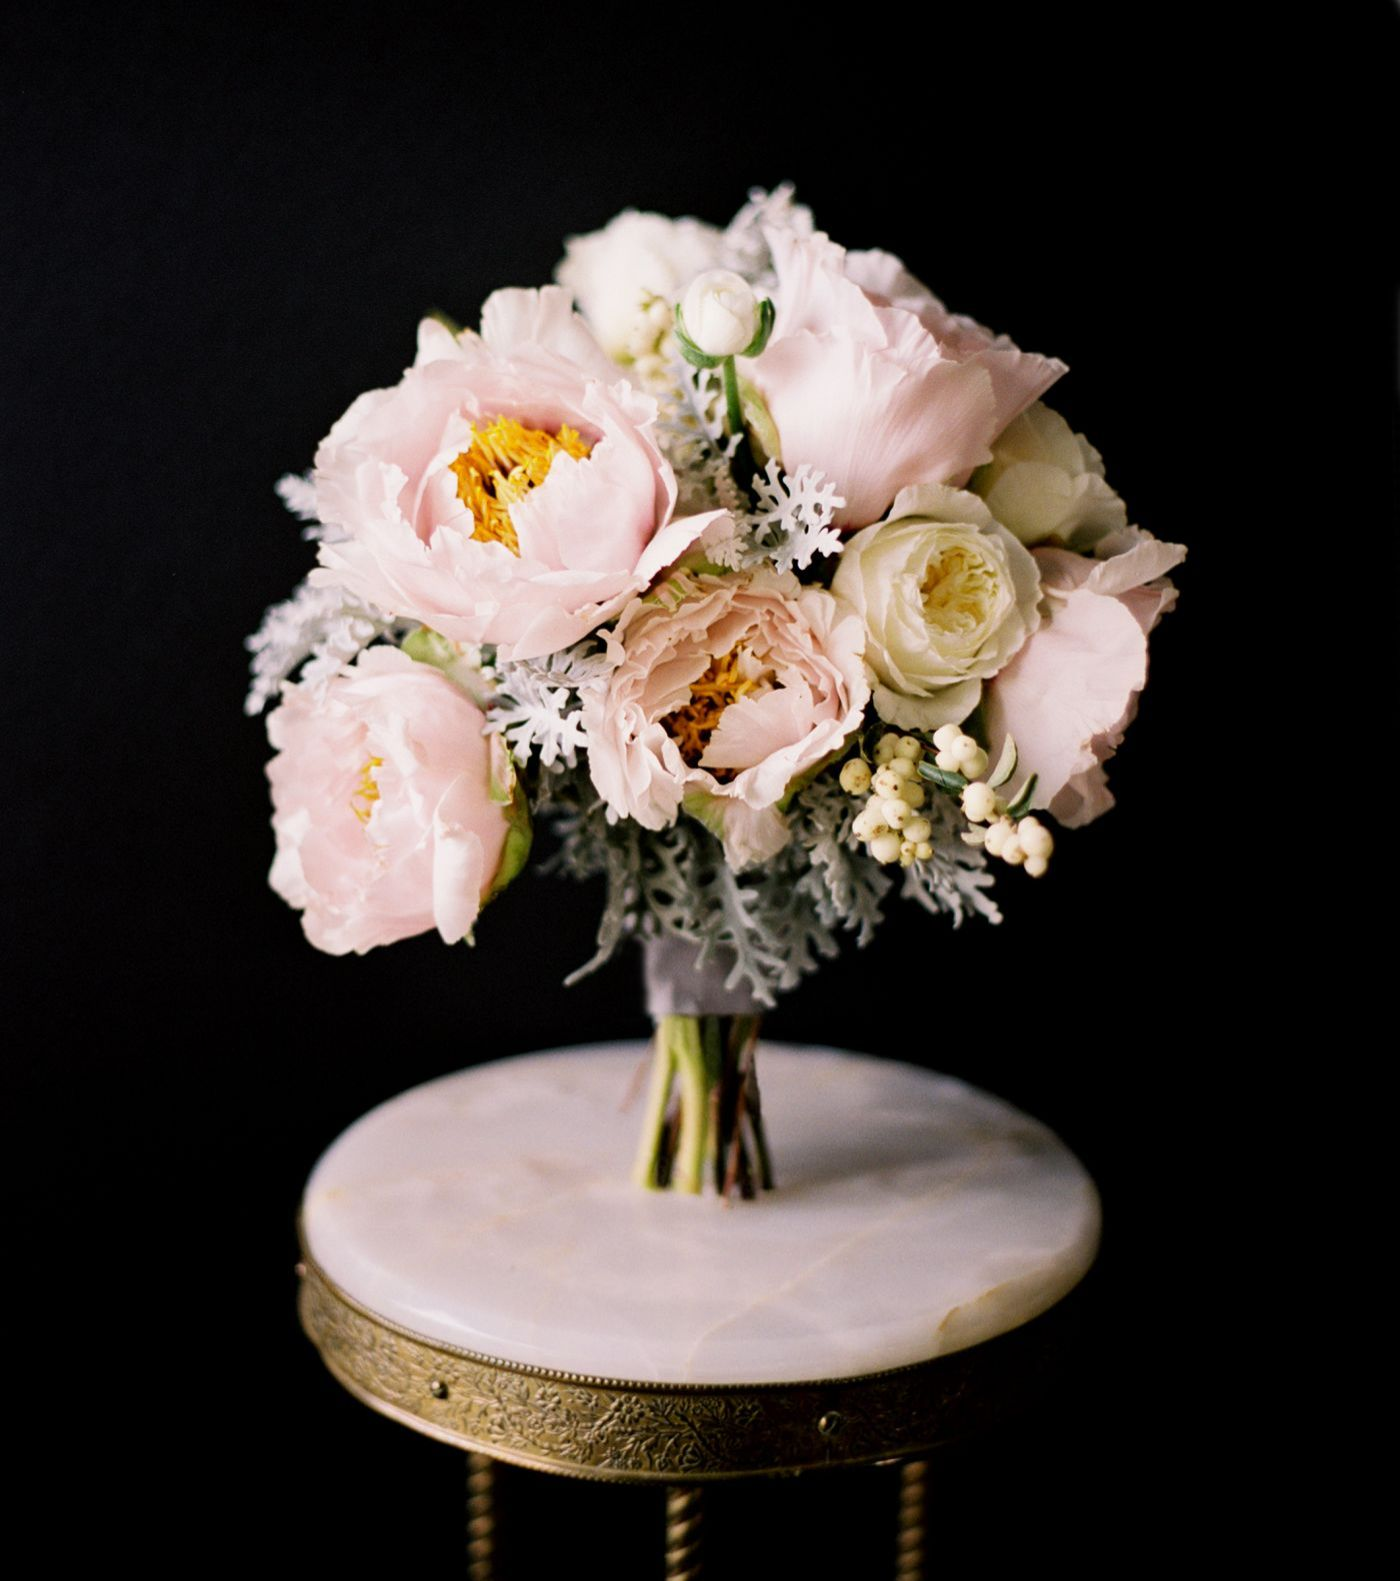 Wedding Bouquet Traditional Flowers : Peony rose dusty miller ranunculus bridal bouquet white pink gray grey once wed